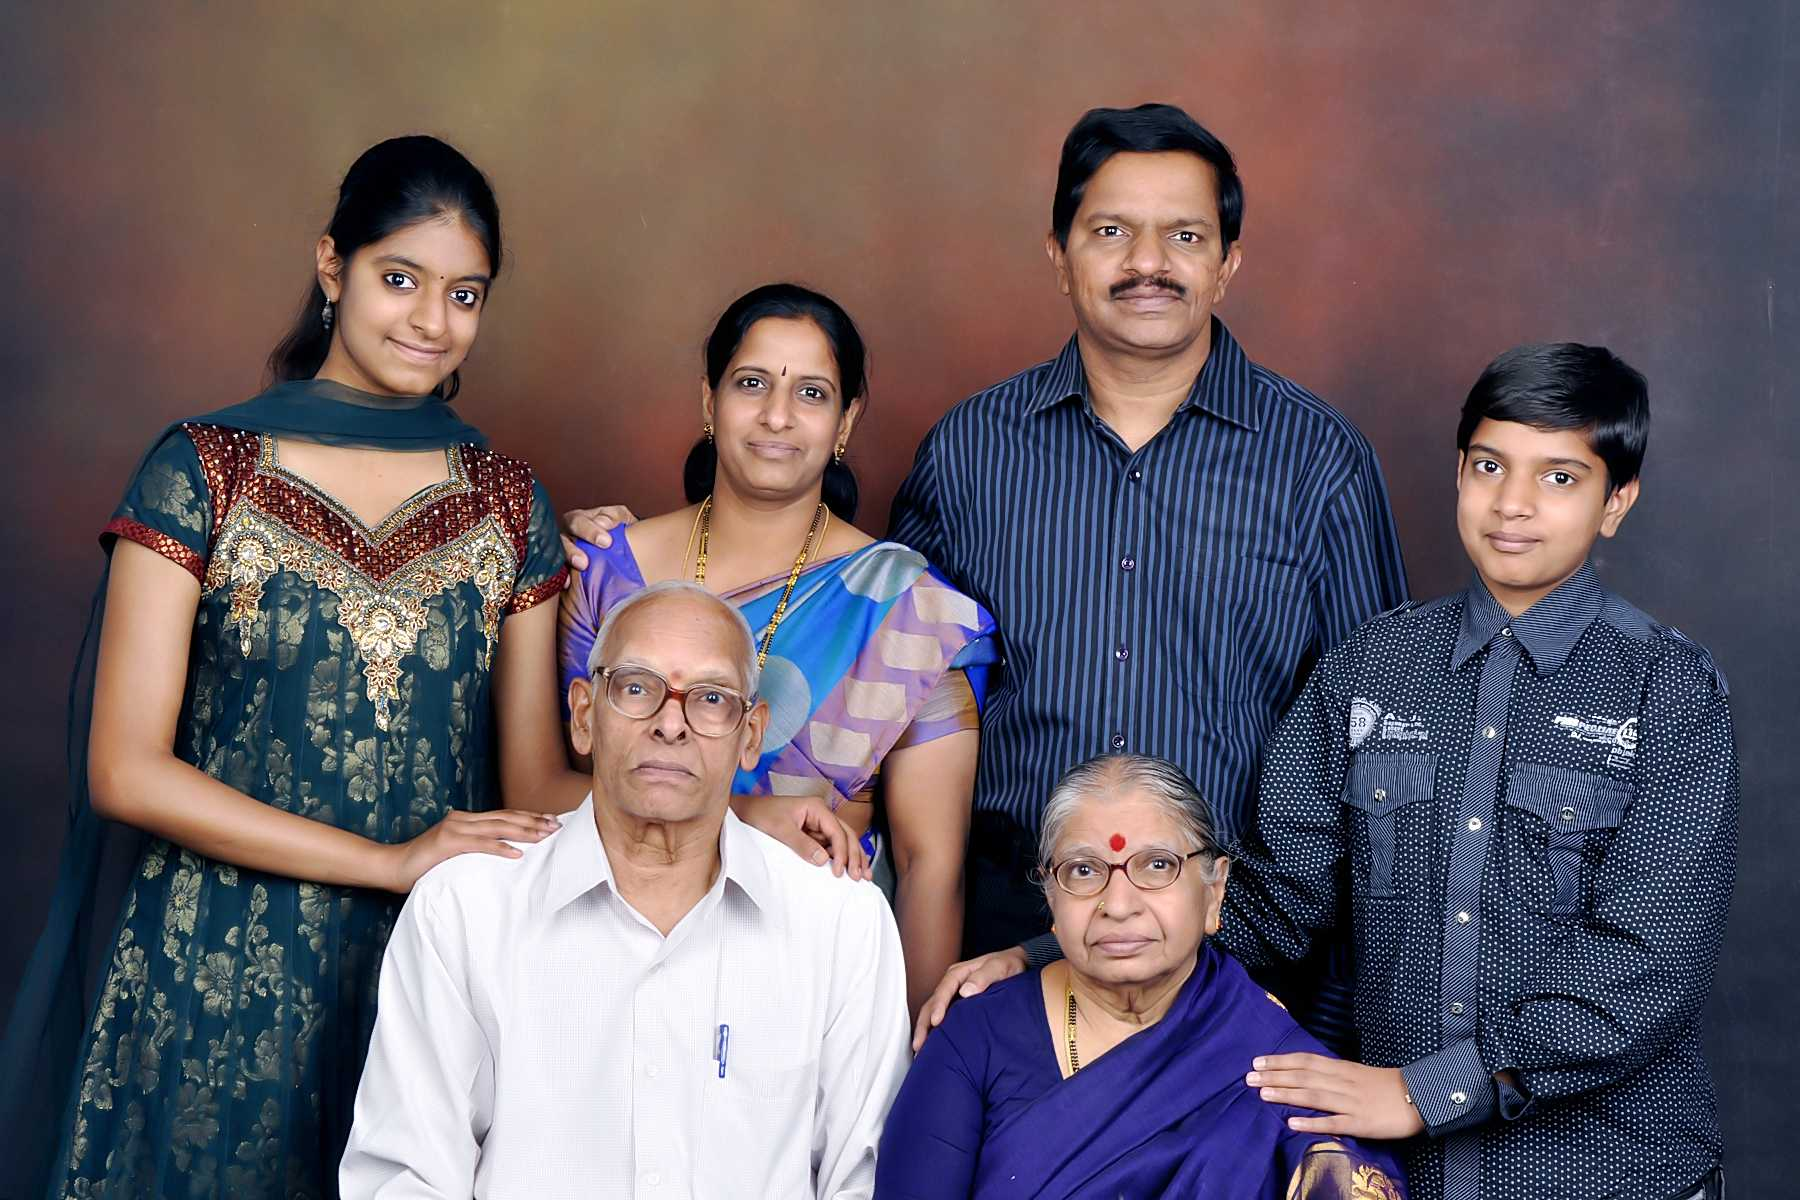 Http Civil Iisc Ernet In Nagesh Family Pics Htm